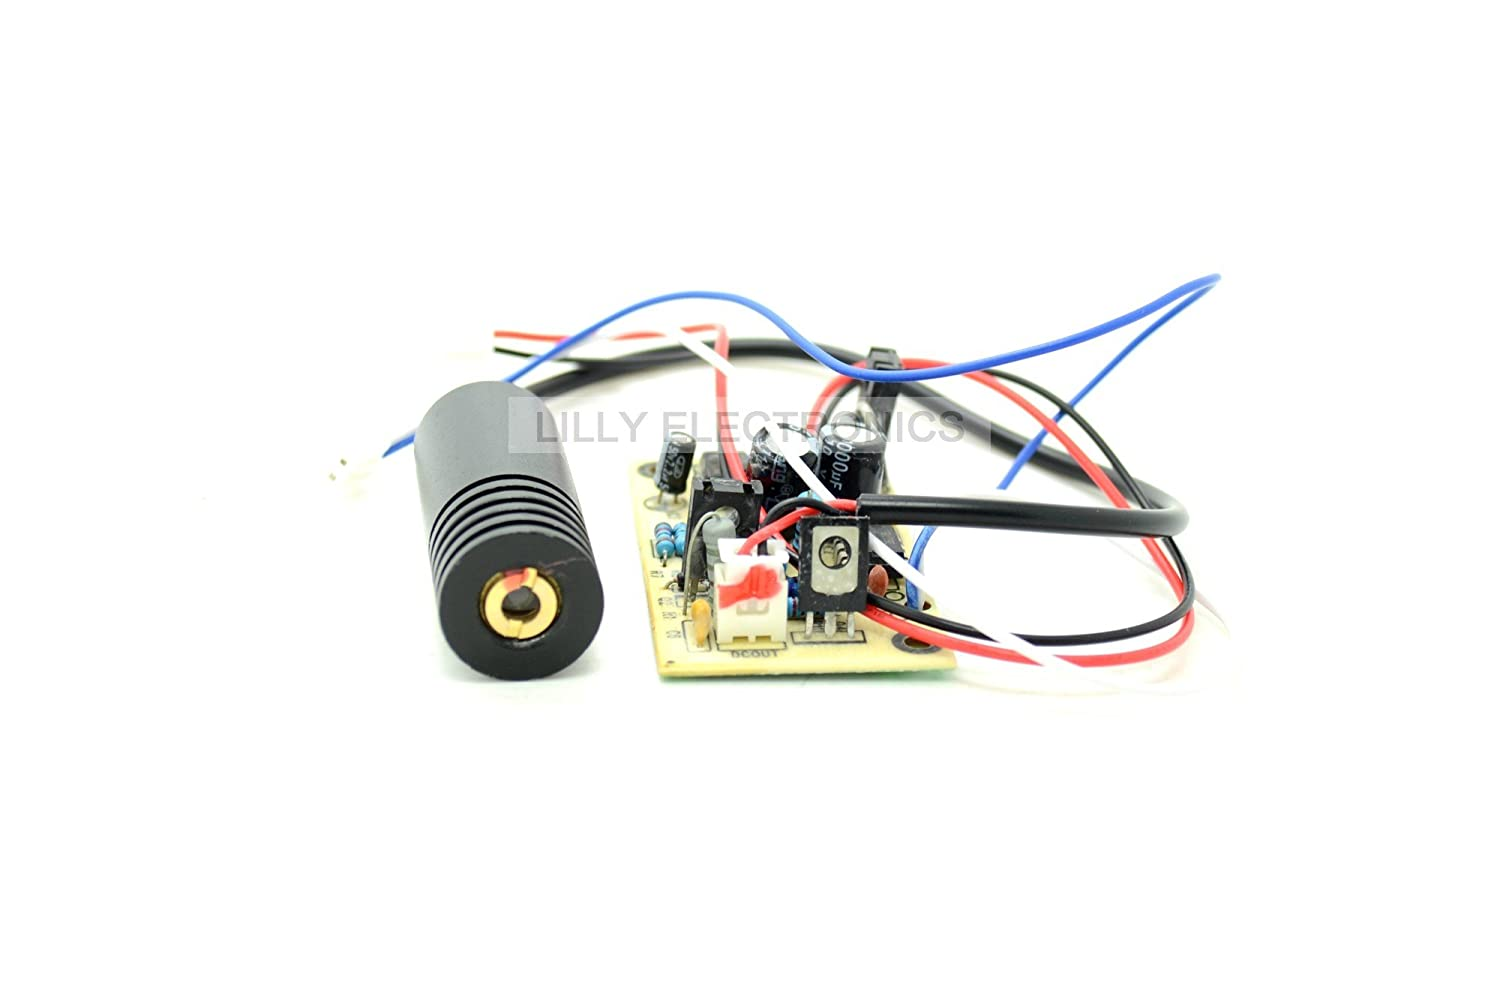 650  nm 150  mW Laser Rouge Dot Module 5  V W/Driver Out 18  x 45  mm Blazer